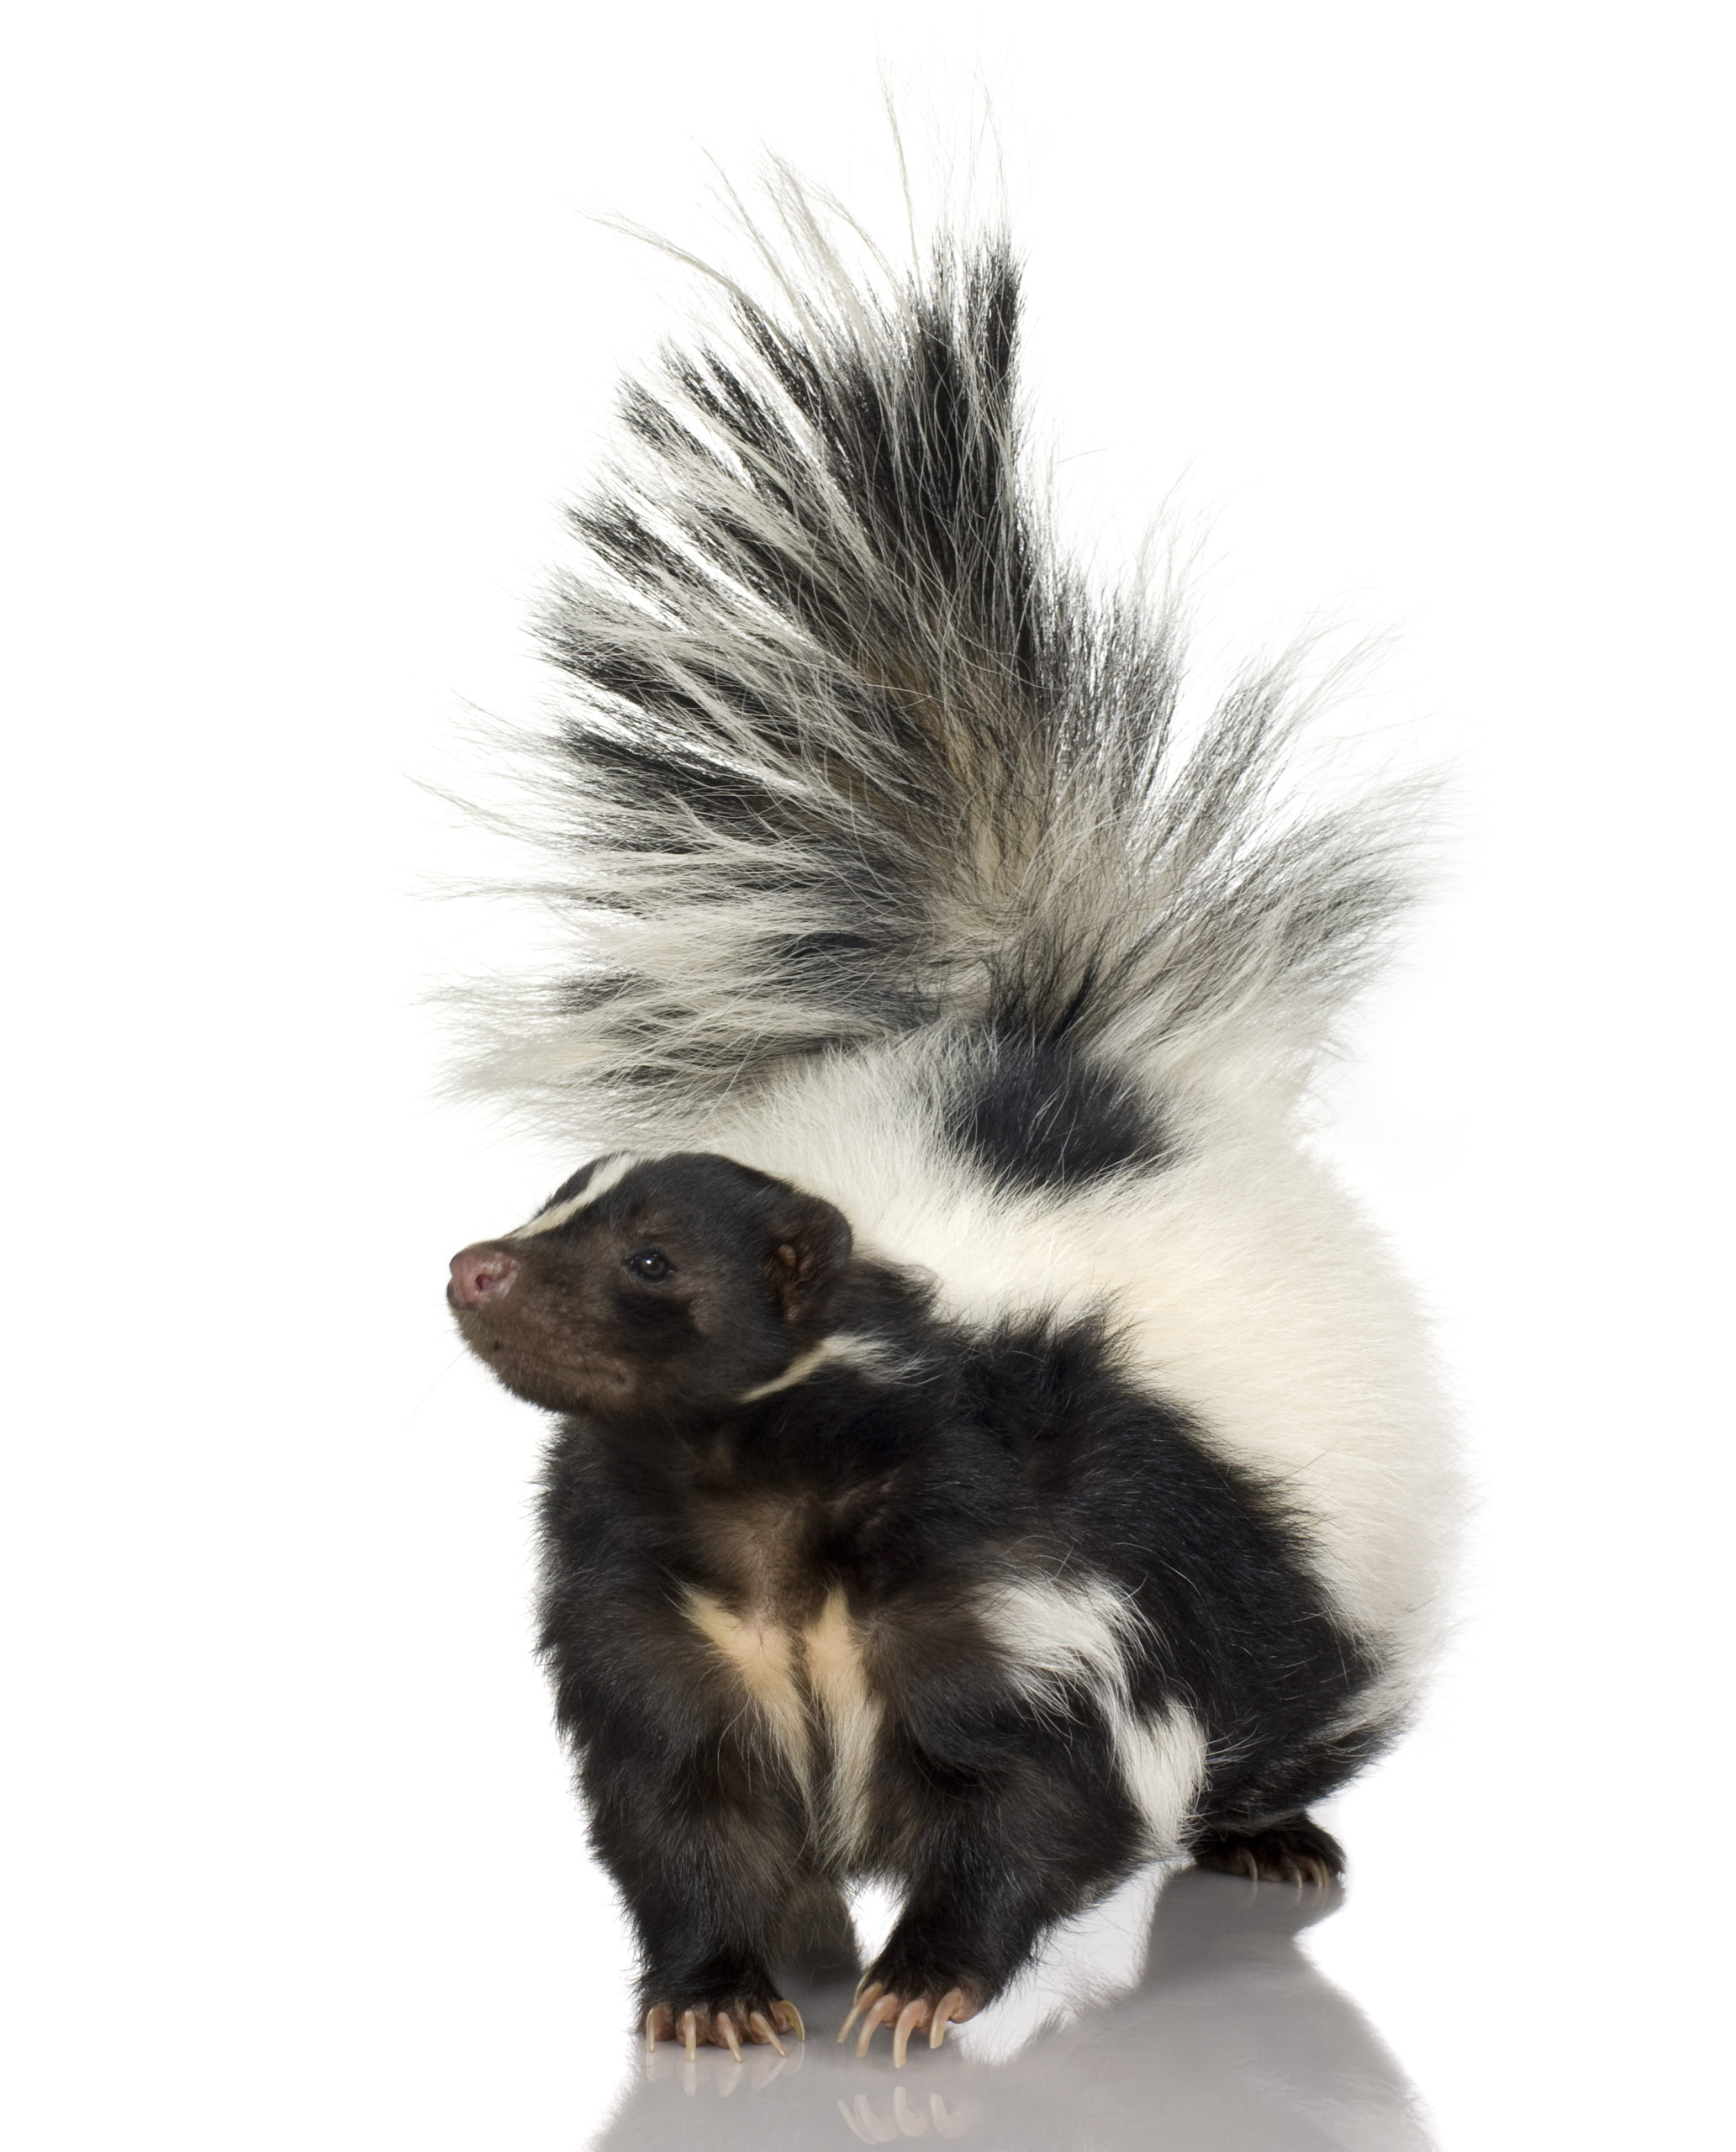 Photograph of a striped skunk